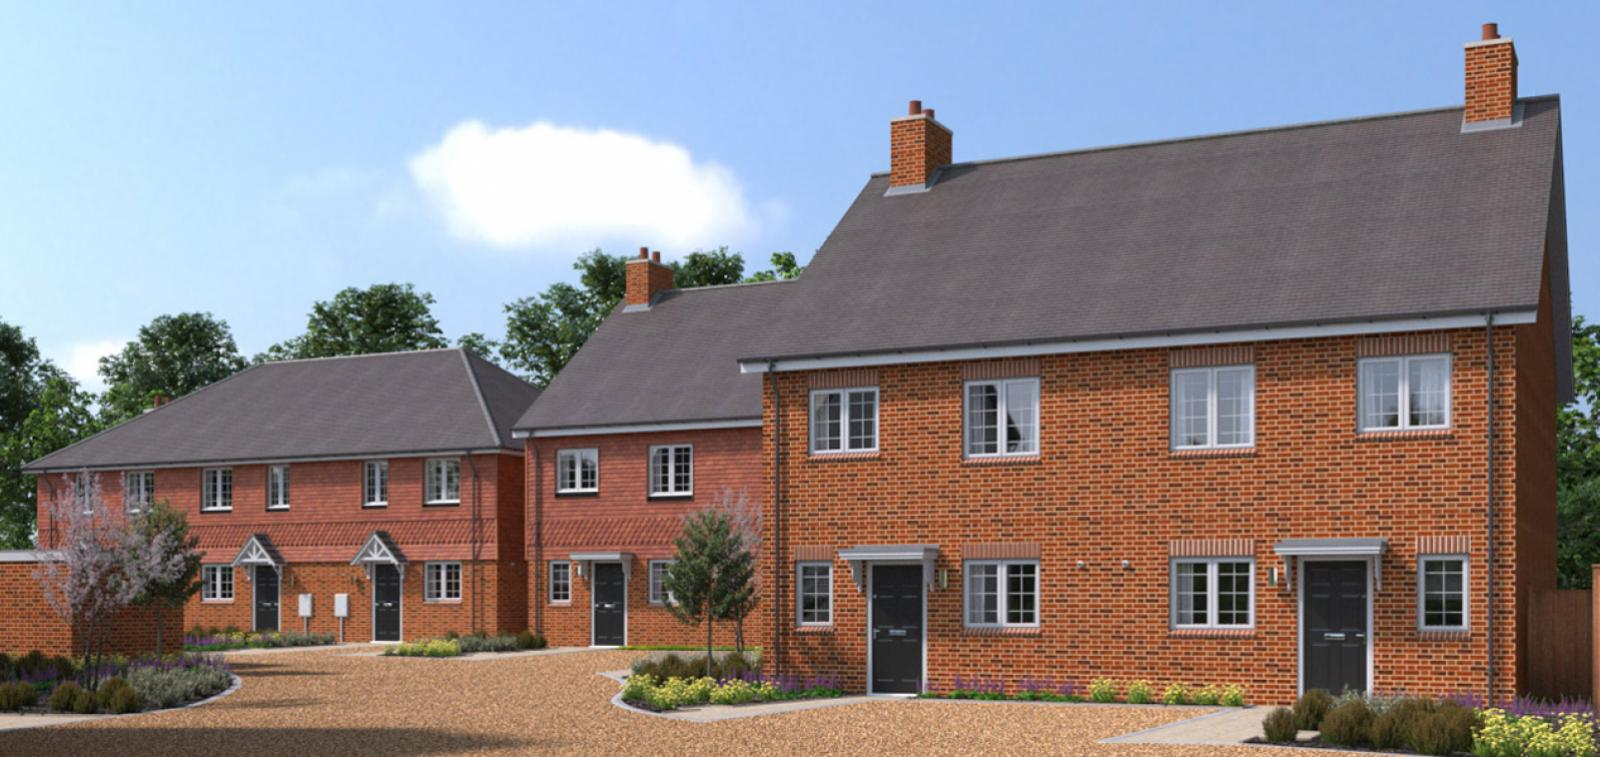 CGI showing the Gatton Grove development in Merstham, Surrey